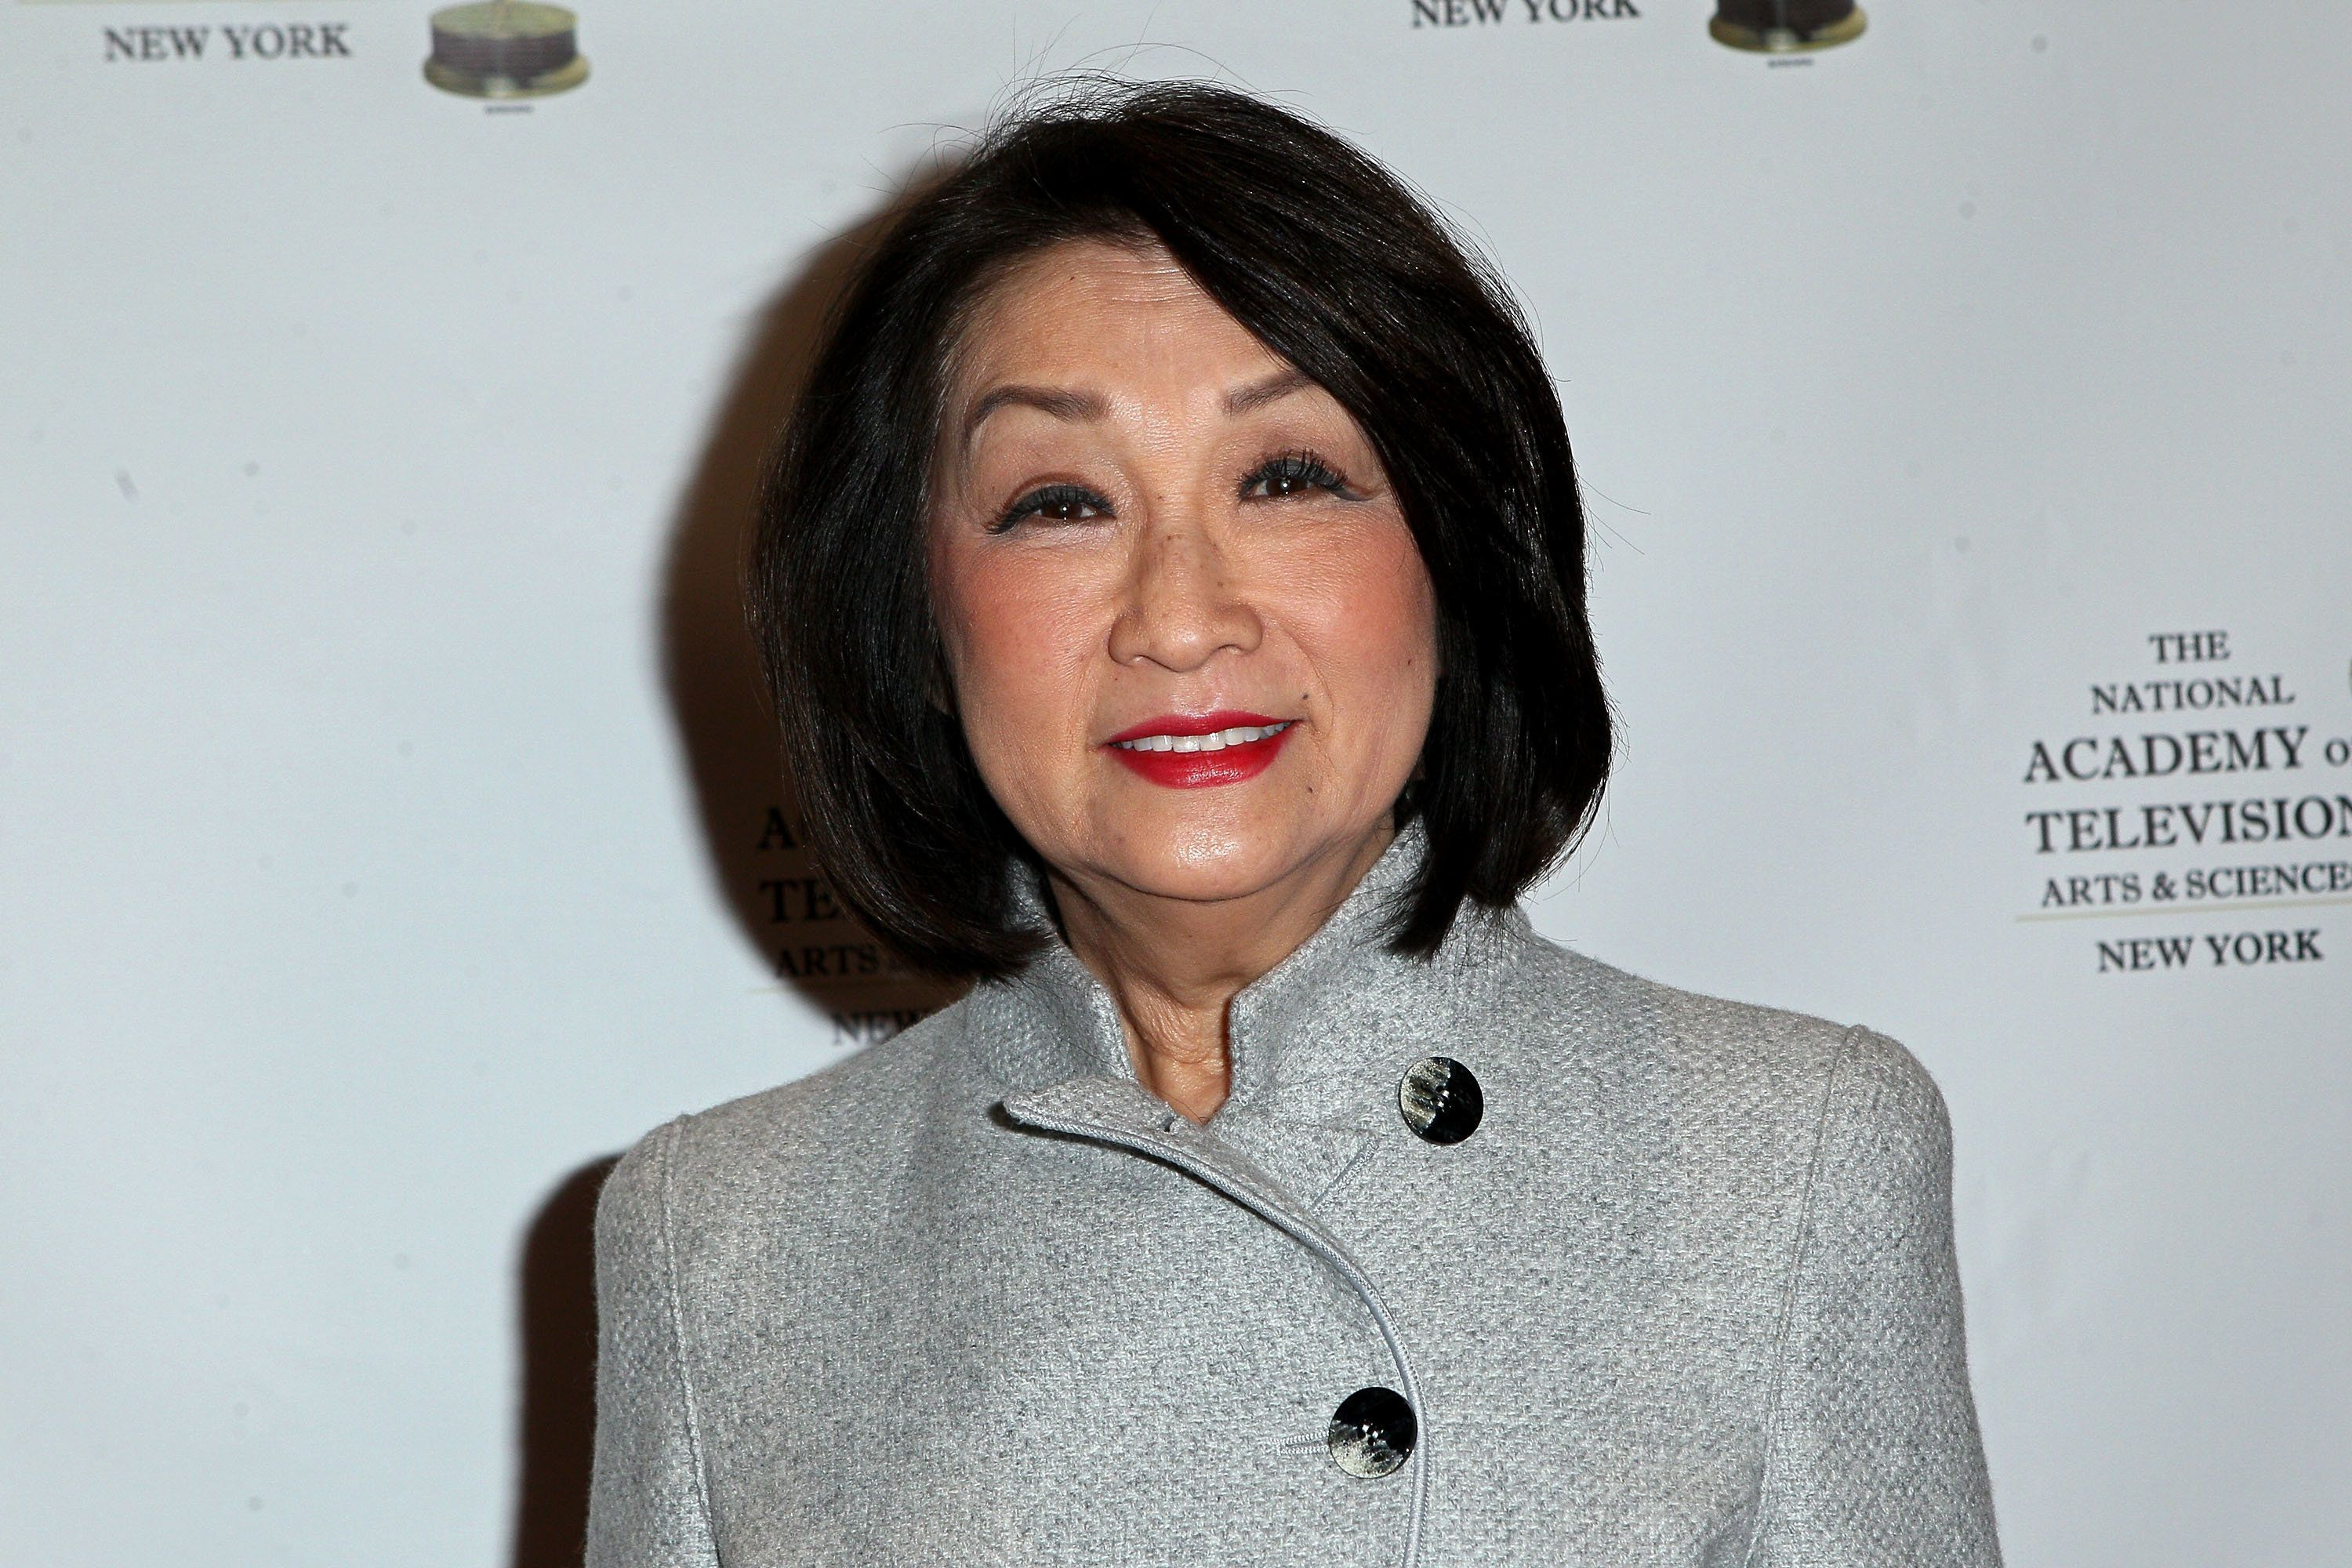 NEW YORK, NY - NOVEMBER 30:  Connie Chung attends the 2017 Gold & Silver Circle Induction Ceremony at The Lambs Club on November 30, 2017 in New York City.  (Photo by Steve Mack/Getty Images)